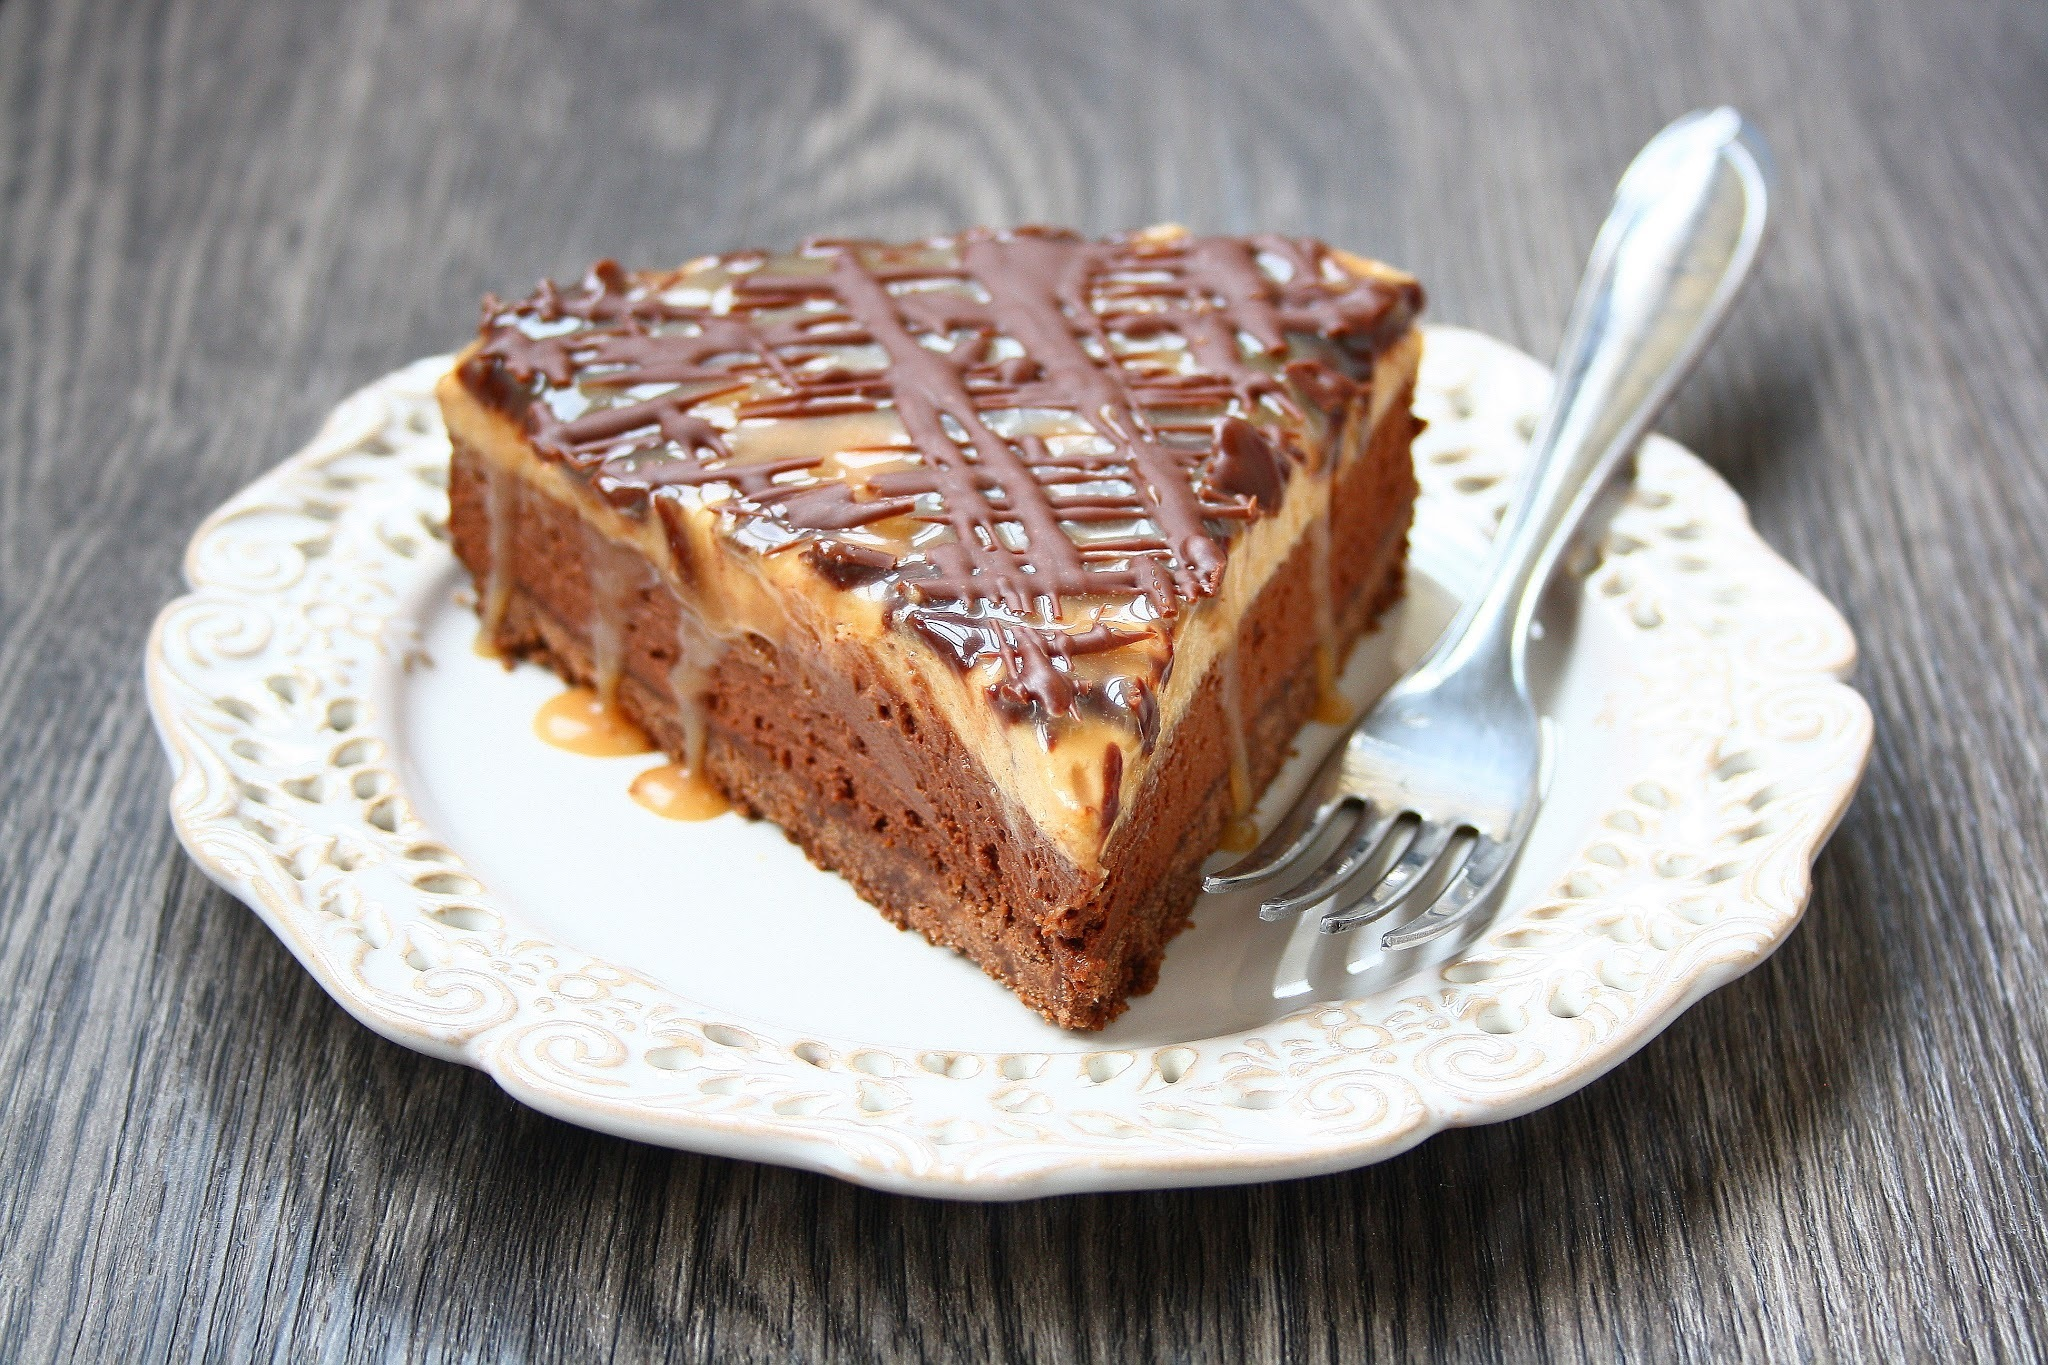 Chocolate Peanut Butter Mousse cake with Salted Caramel Sauce